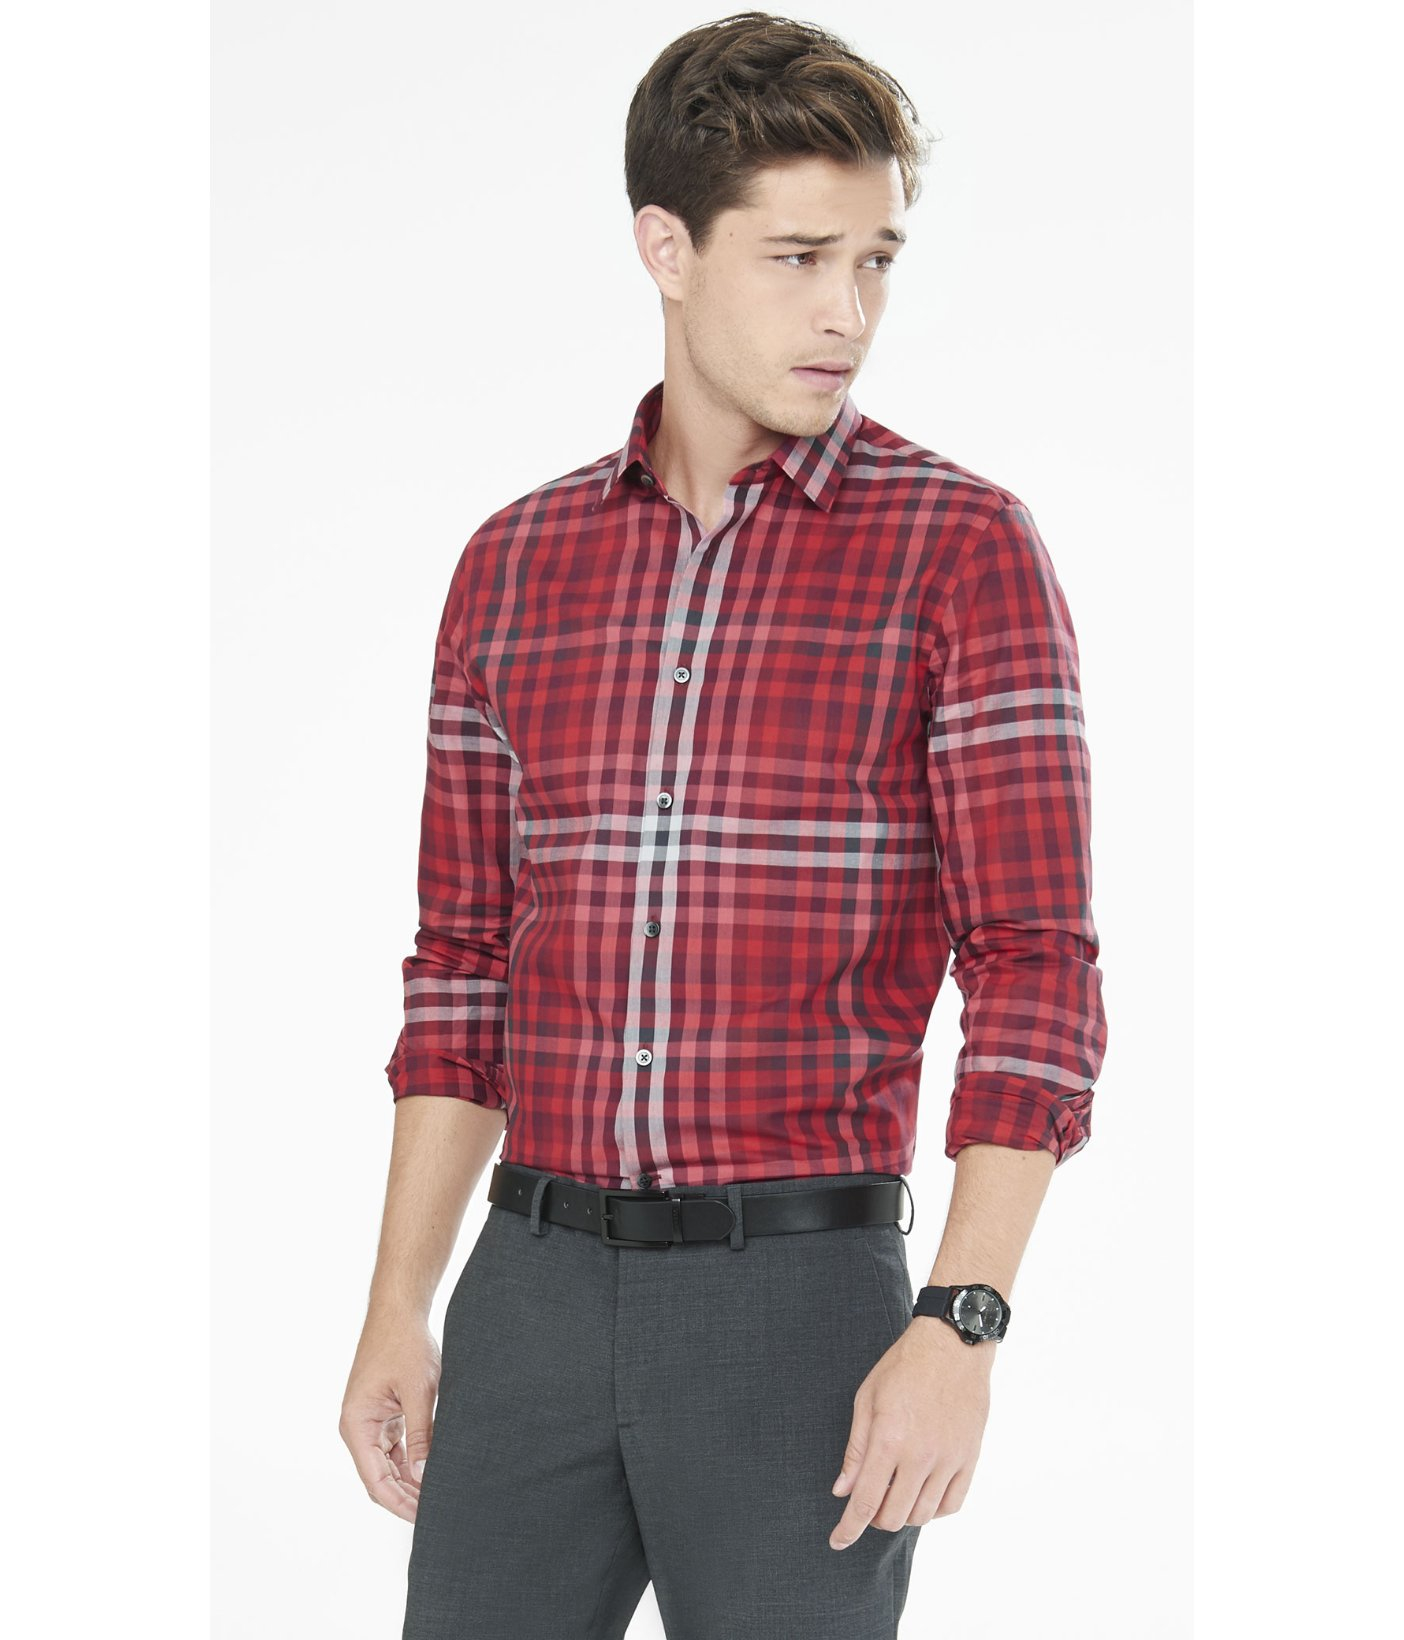 Express modern fit ombre plaid dress shirt in red for men for Modern fit dress shirt